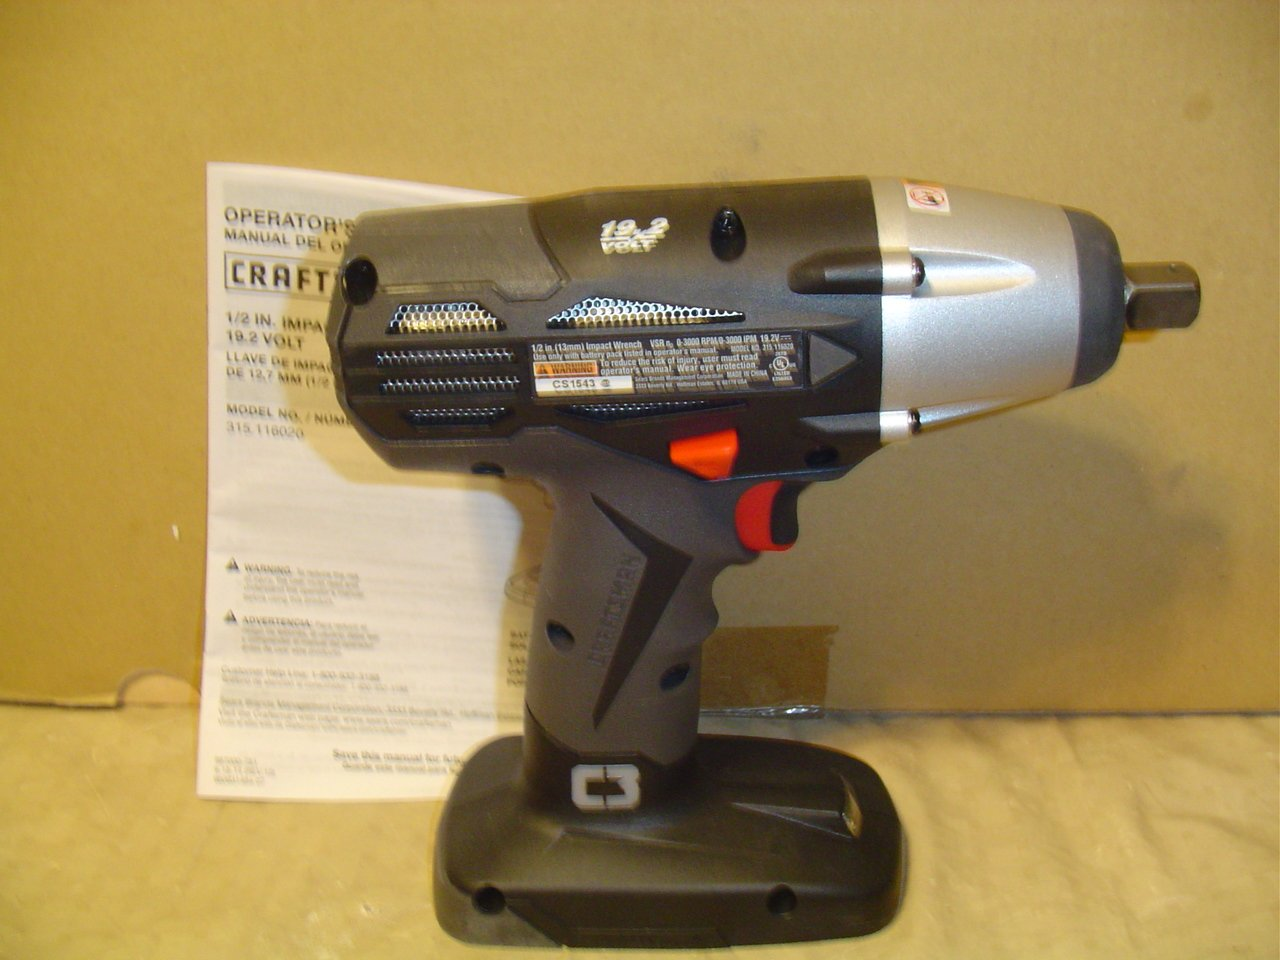 Craftsman 19.2v C3 1 2 Impact Wrench Bulk Packaged. Battery and Charger Not Included